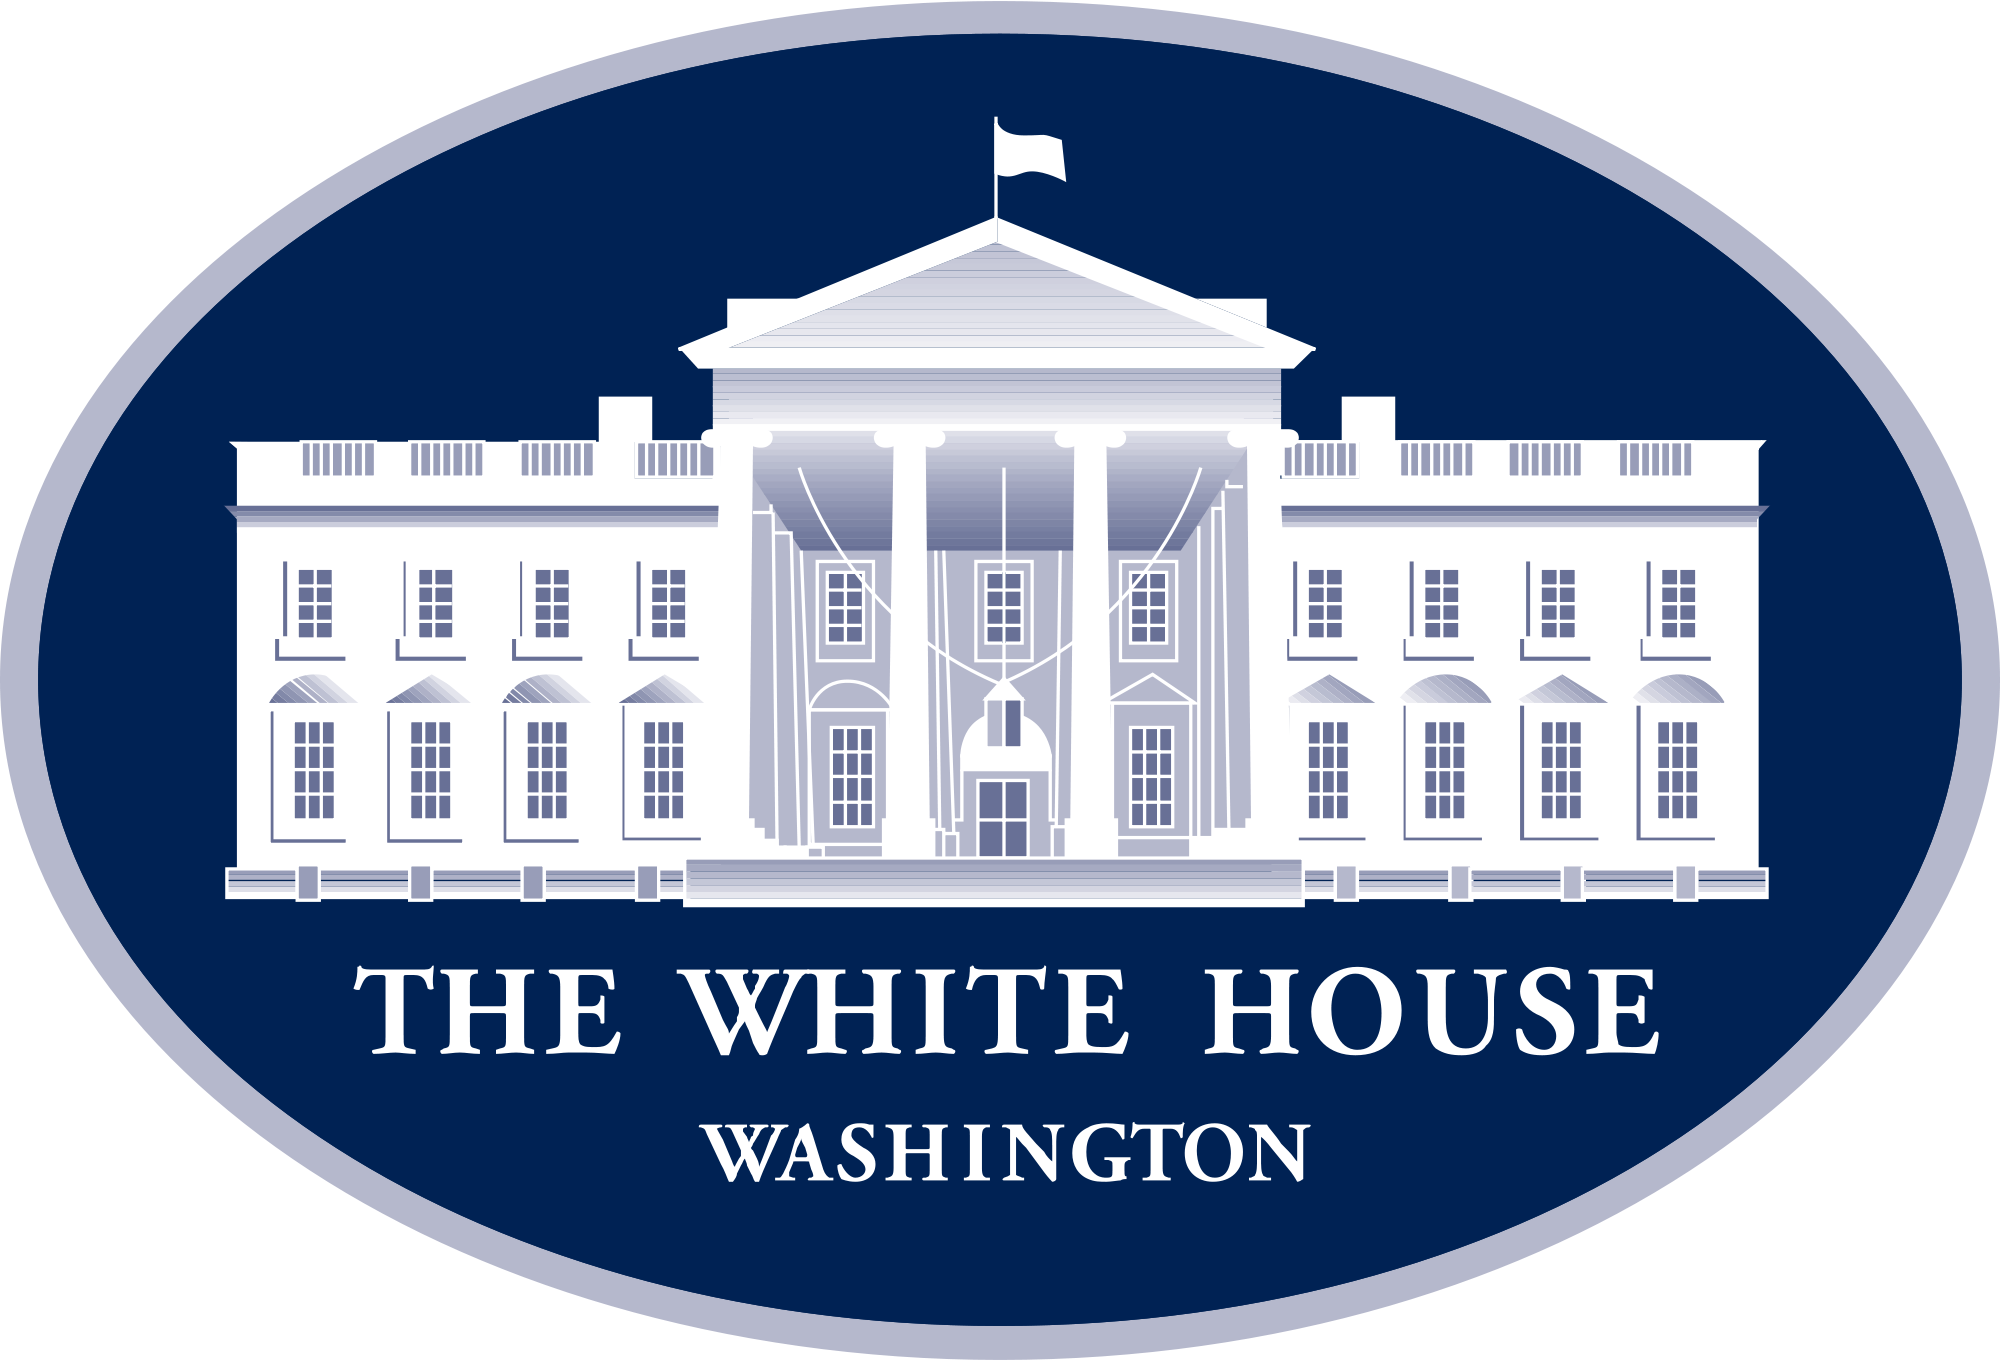 Congress clipart whitehouse. Obama institute for advanced